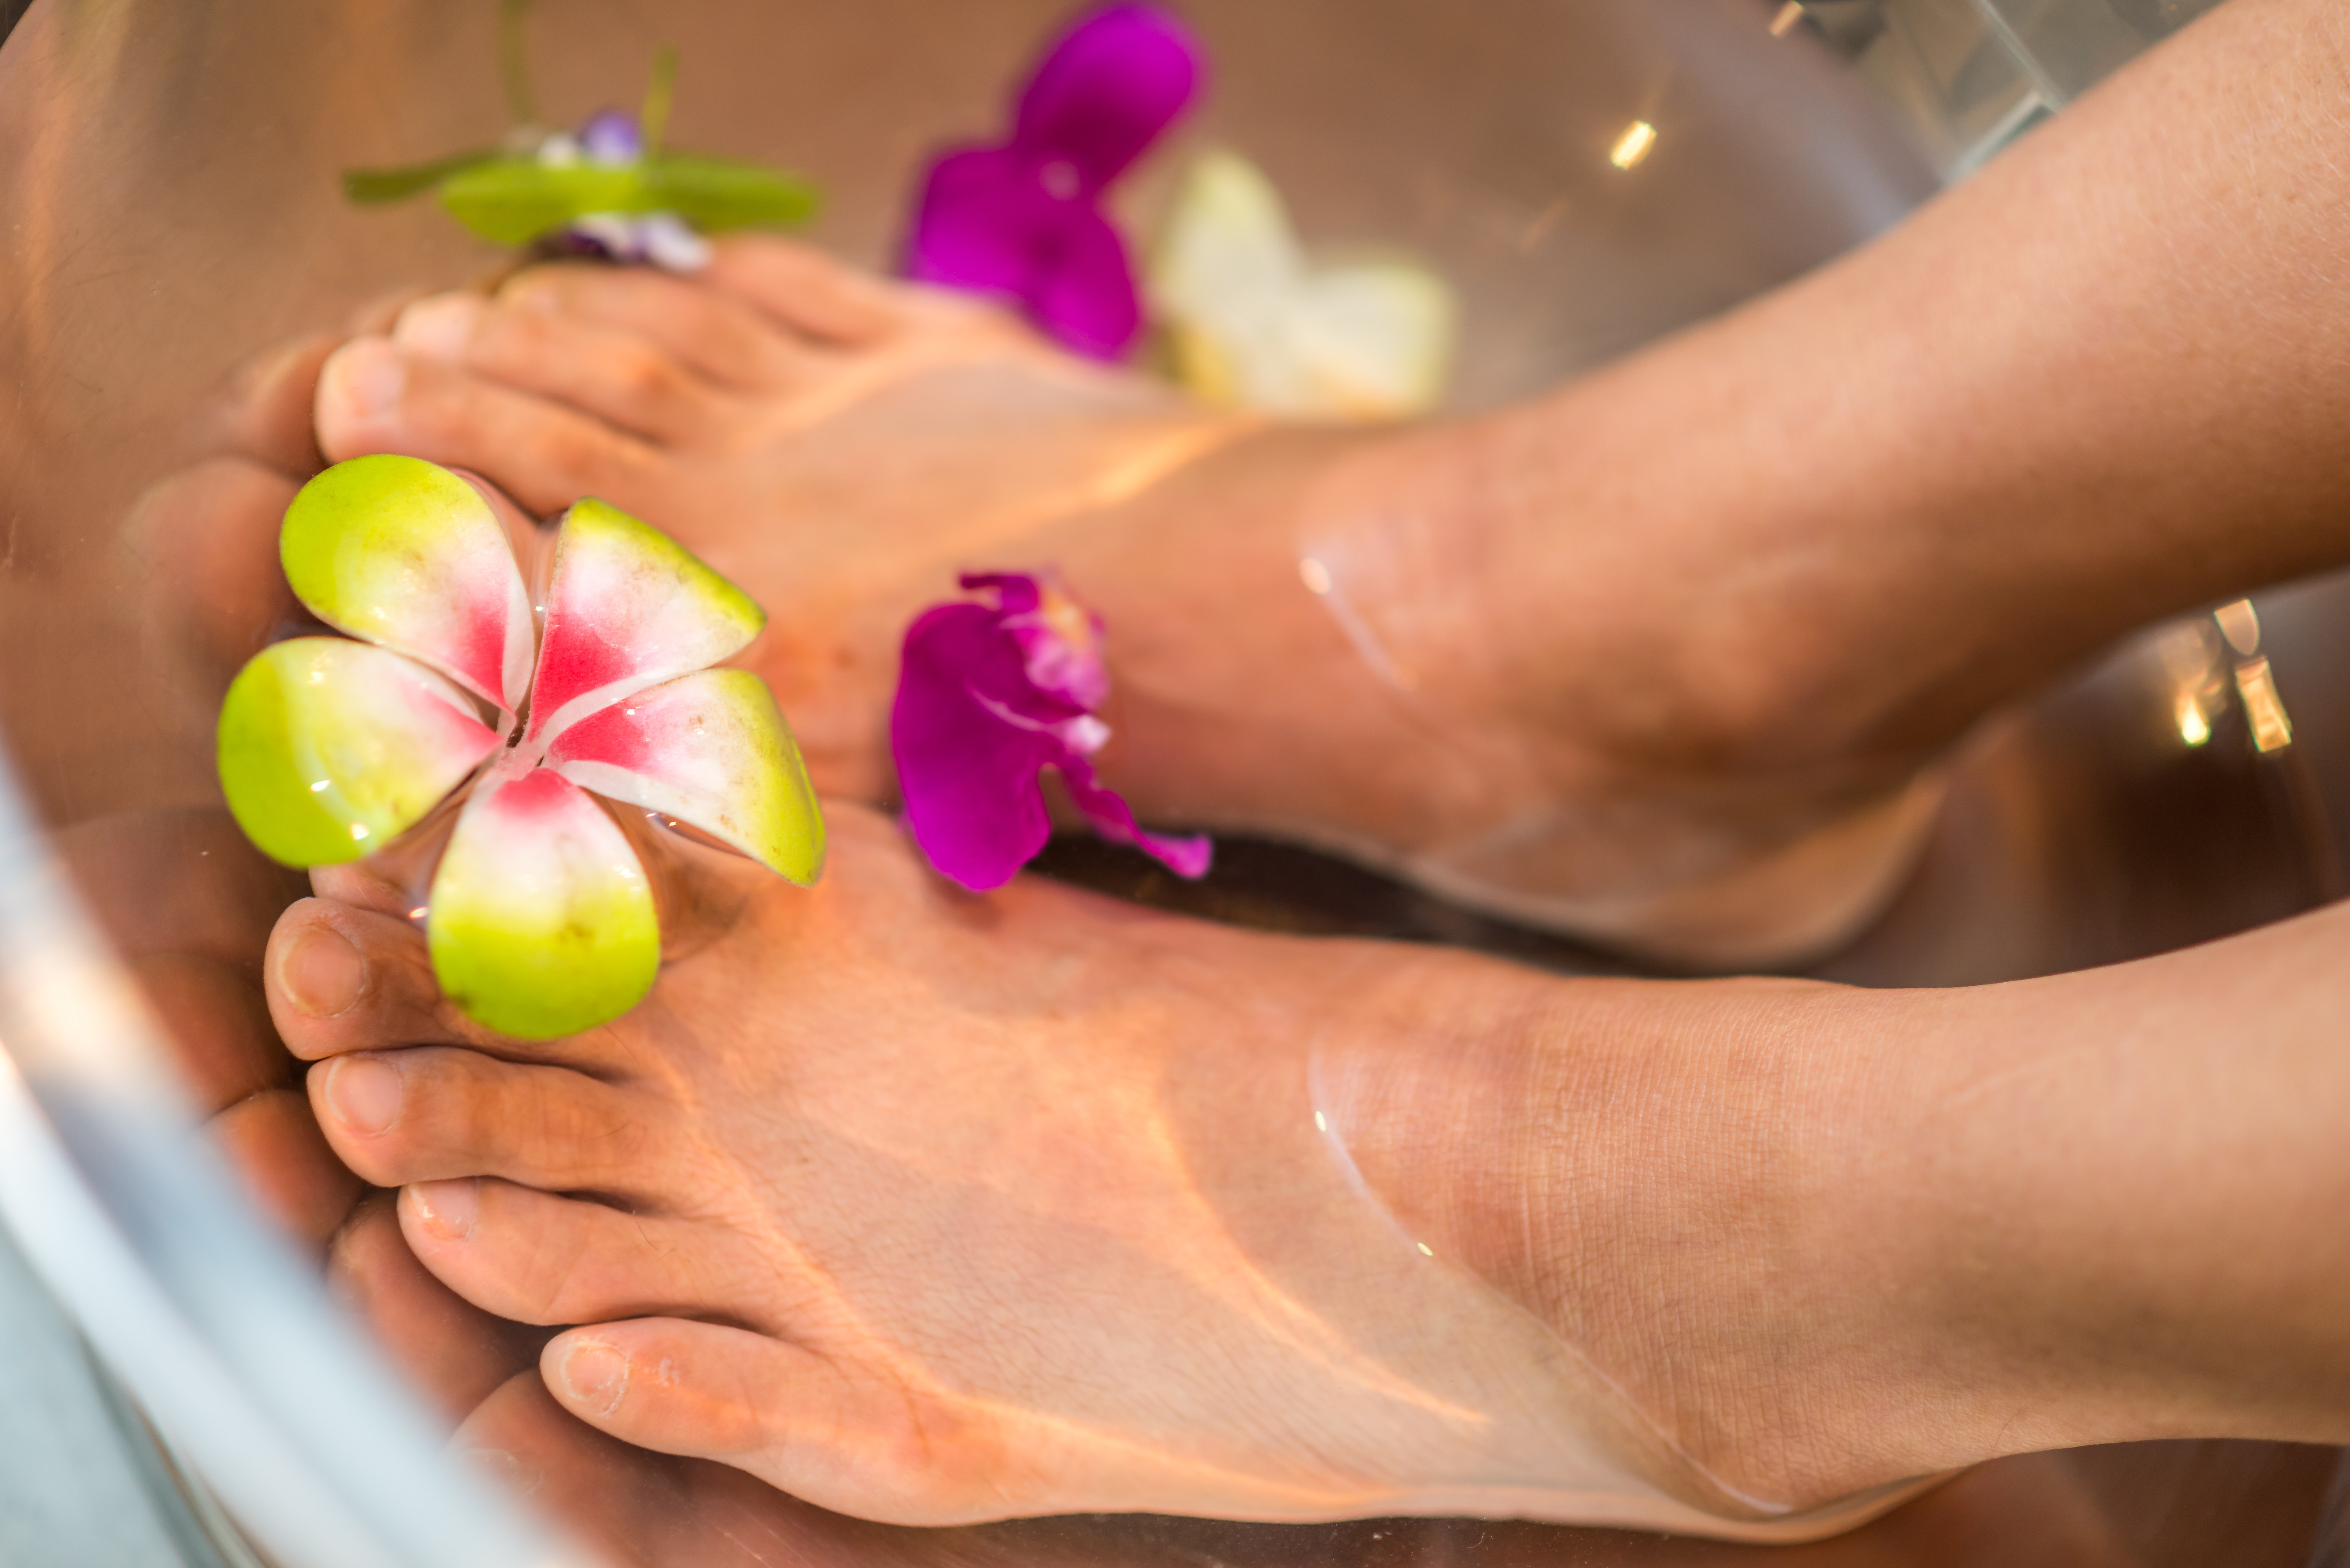 Feet in a basin of water with flowers.